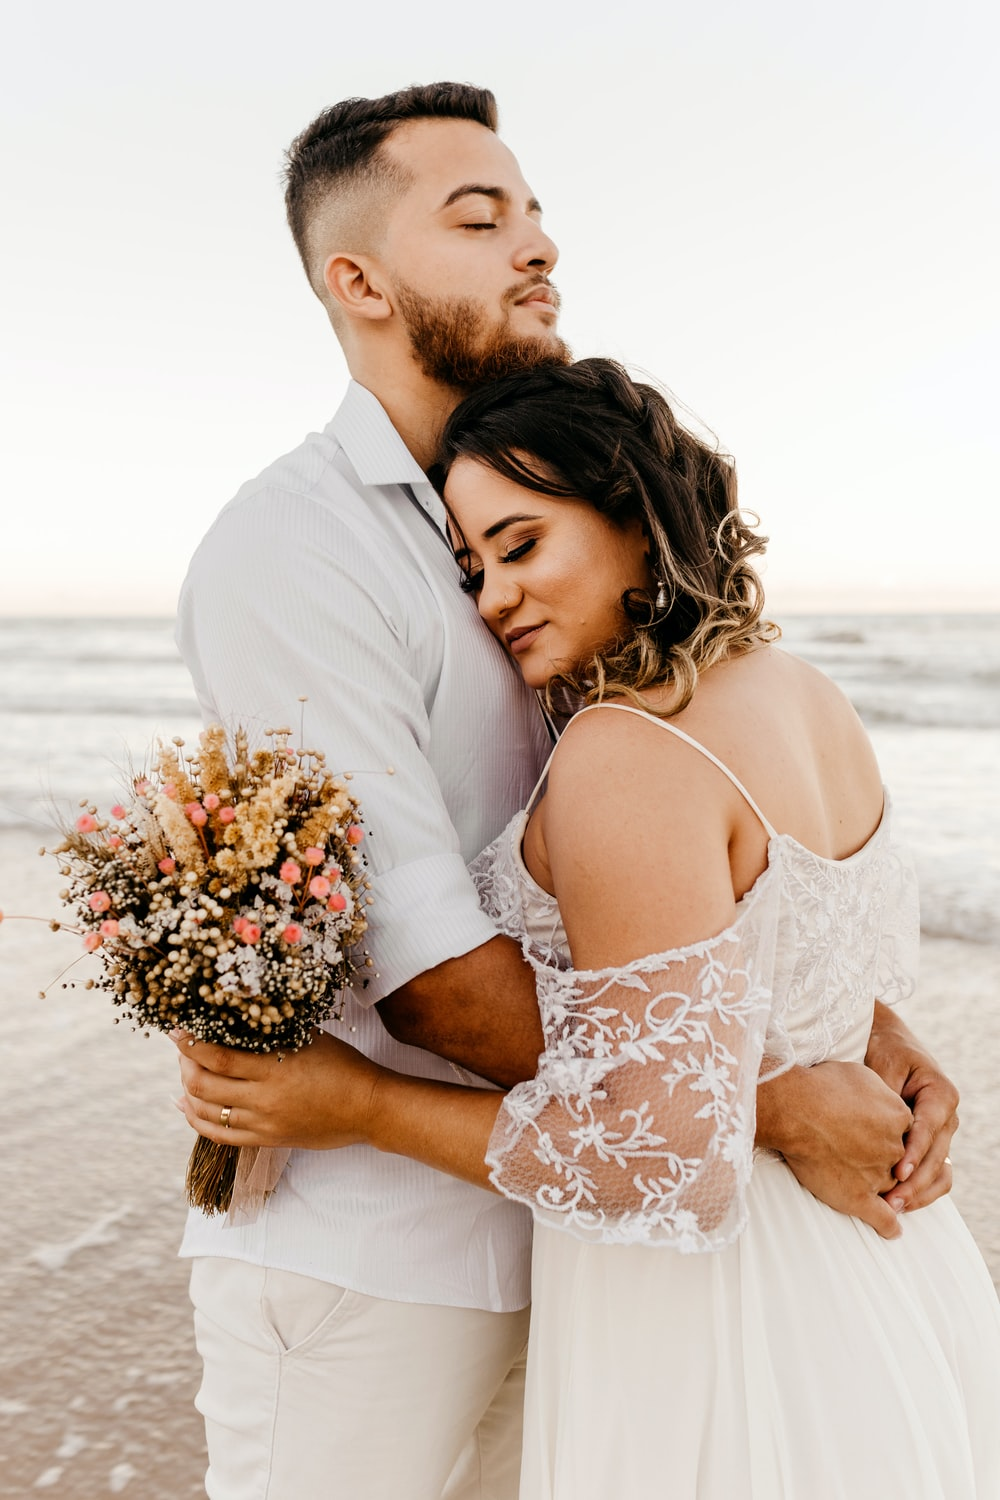 man in white suit kissing woman in white floral dress on beach during daytime